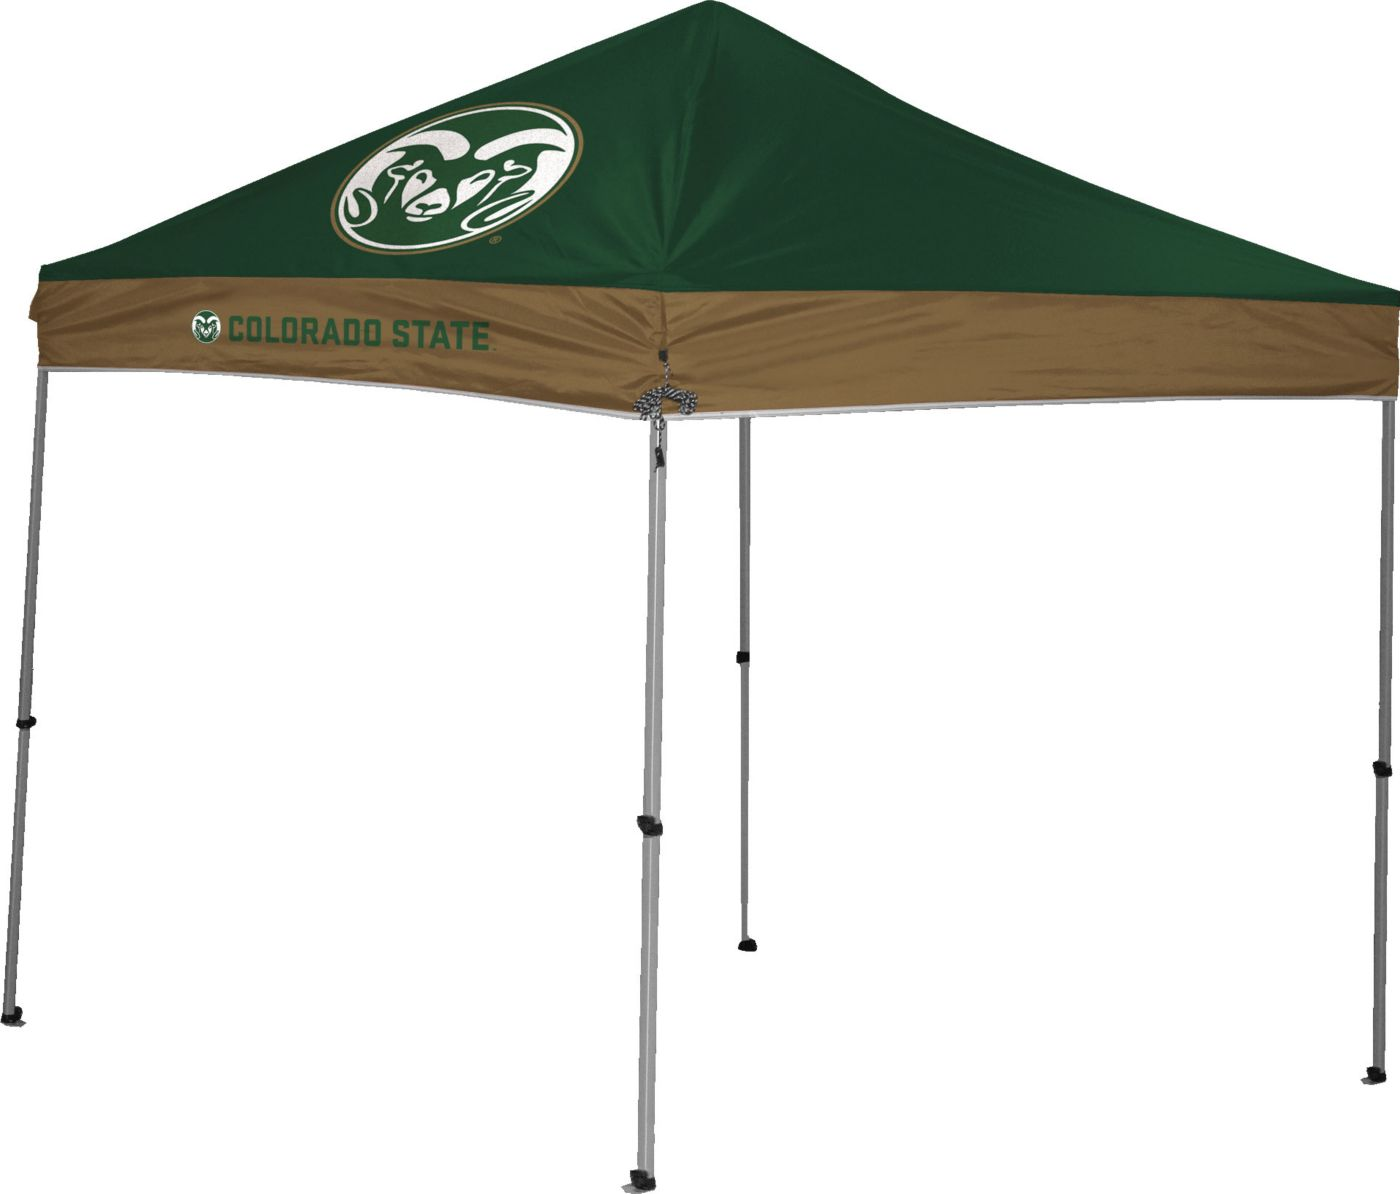 Rawlings Colorado State Rams 9' x 9' Sideline Canopy Tent